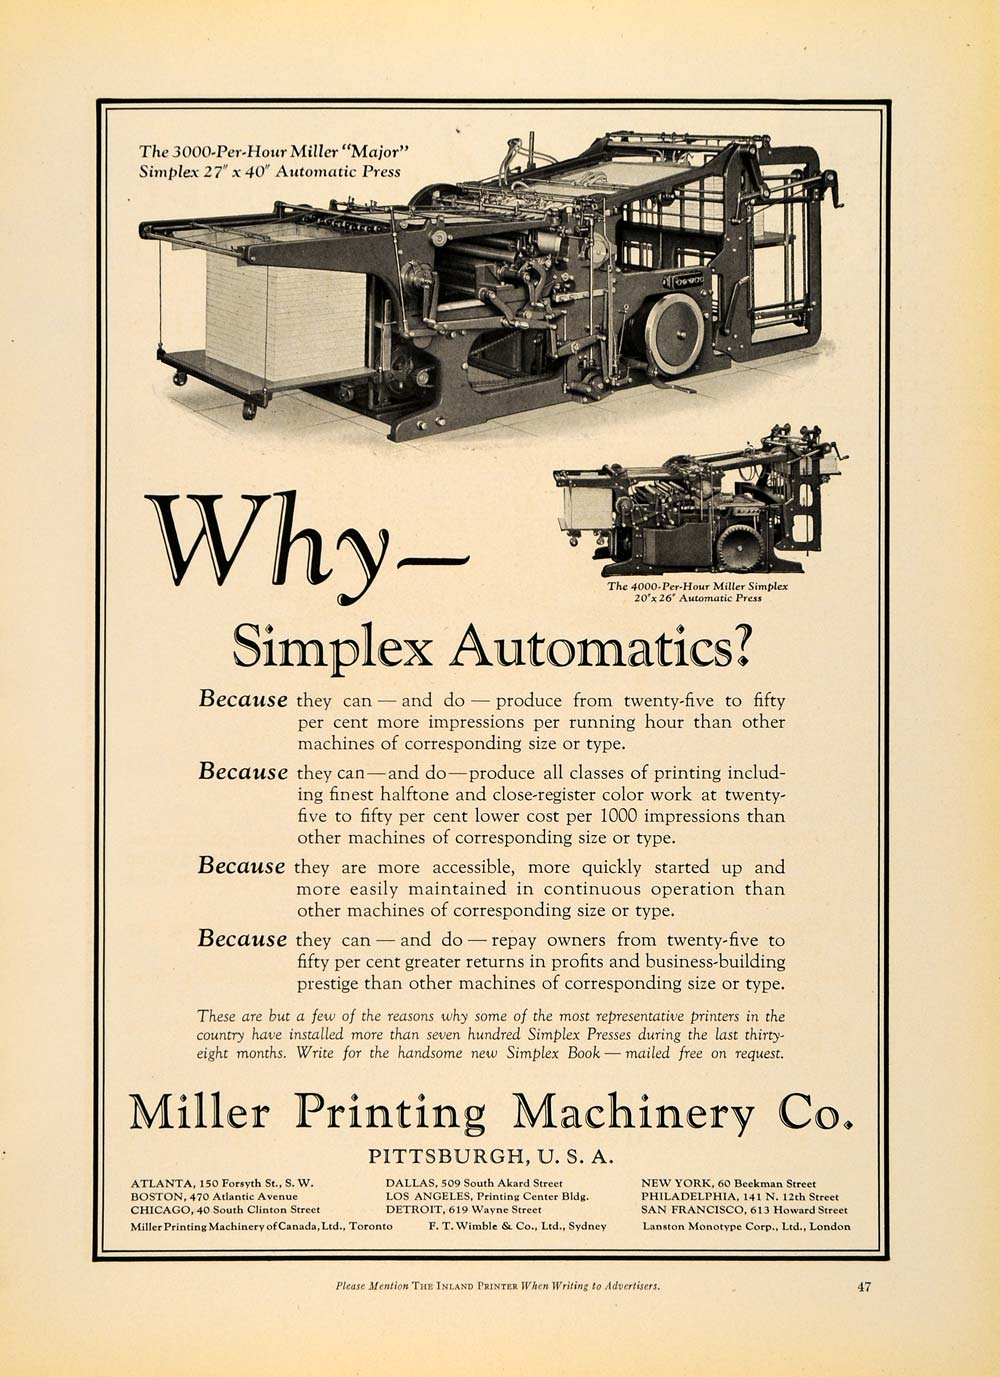 1930 Ad Miller Printing Machinery Co. Automatic Press - ORIGINAL IPR1